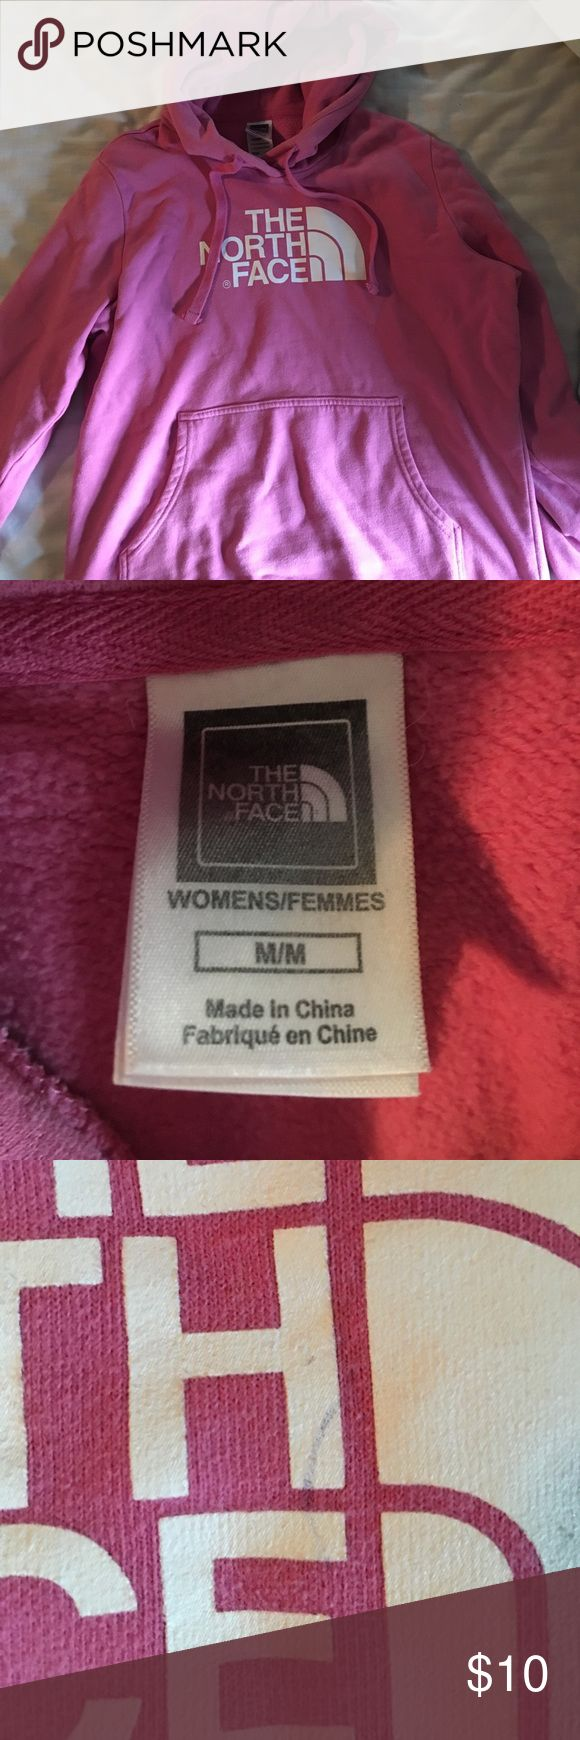 Pink The North Face hoodie Pink The North Face hoodie/ sweatshirt. Good condition other than the mark on the letter in the third photo. The North Face Tops Sweatshirts & Hoodies